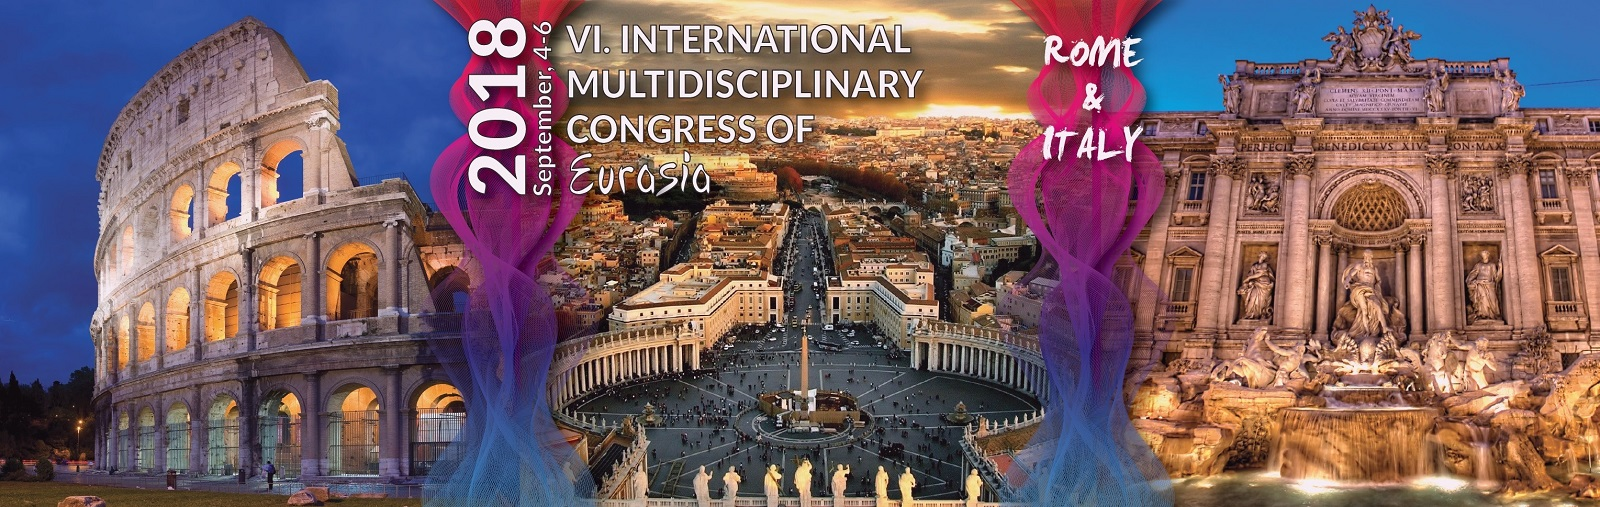 VI. International Multidisciplinary Congress of Eurasia